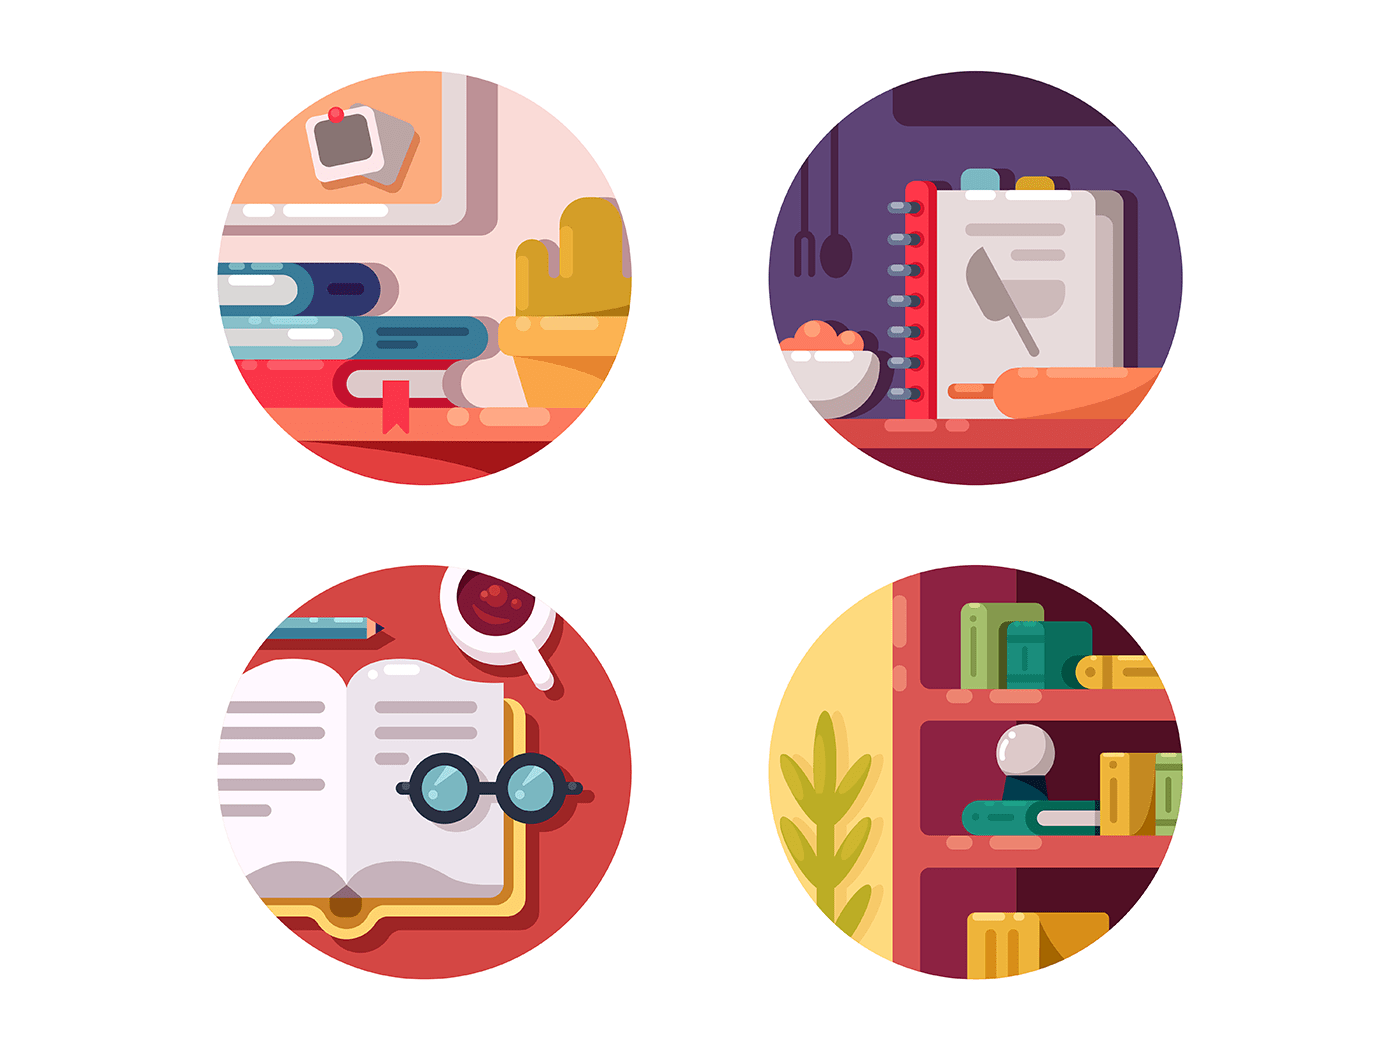 Books for education icons